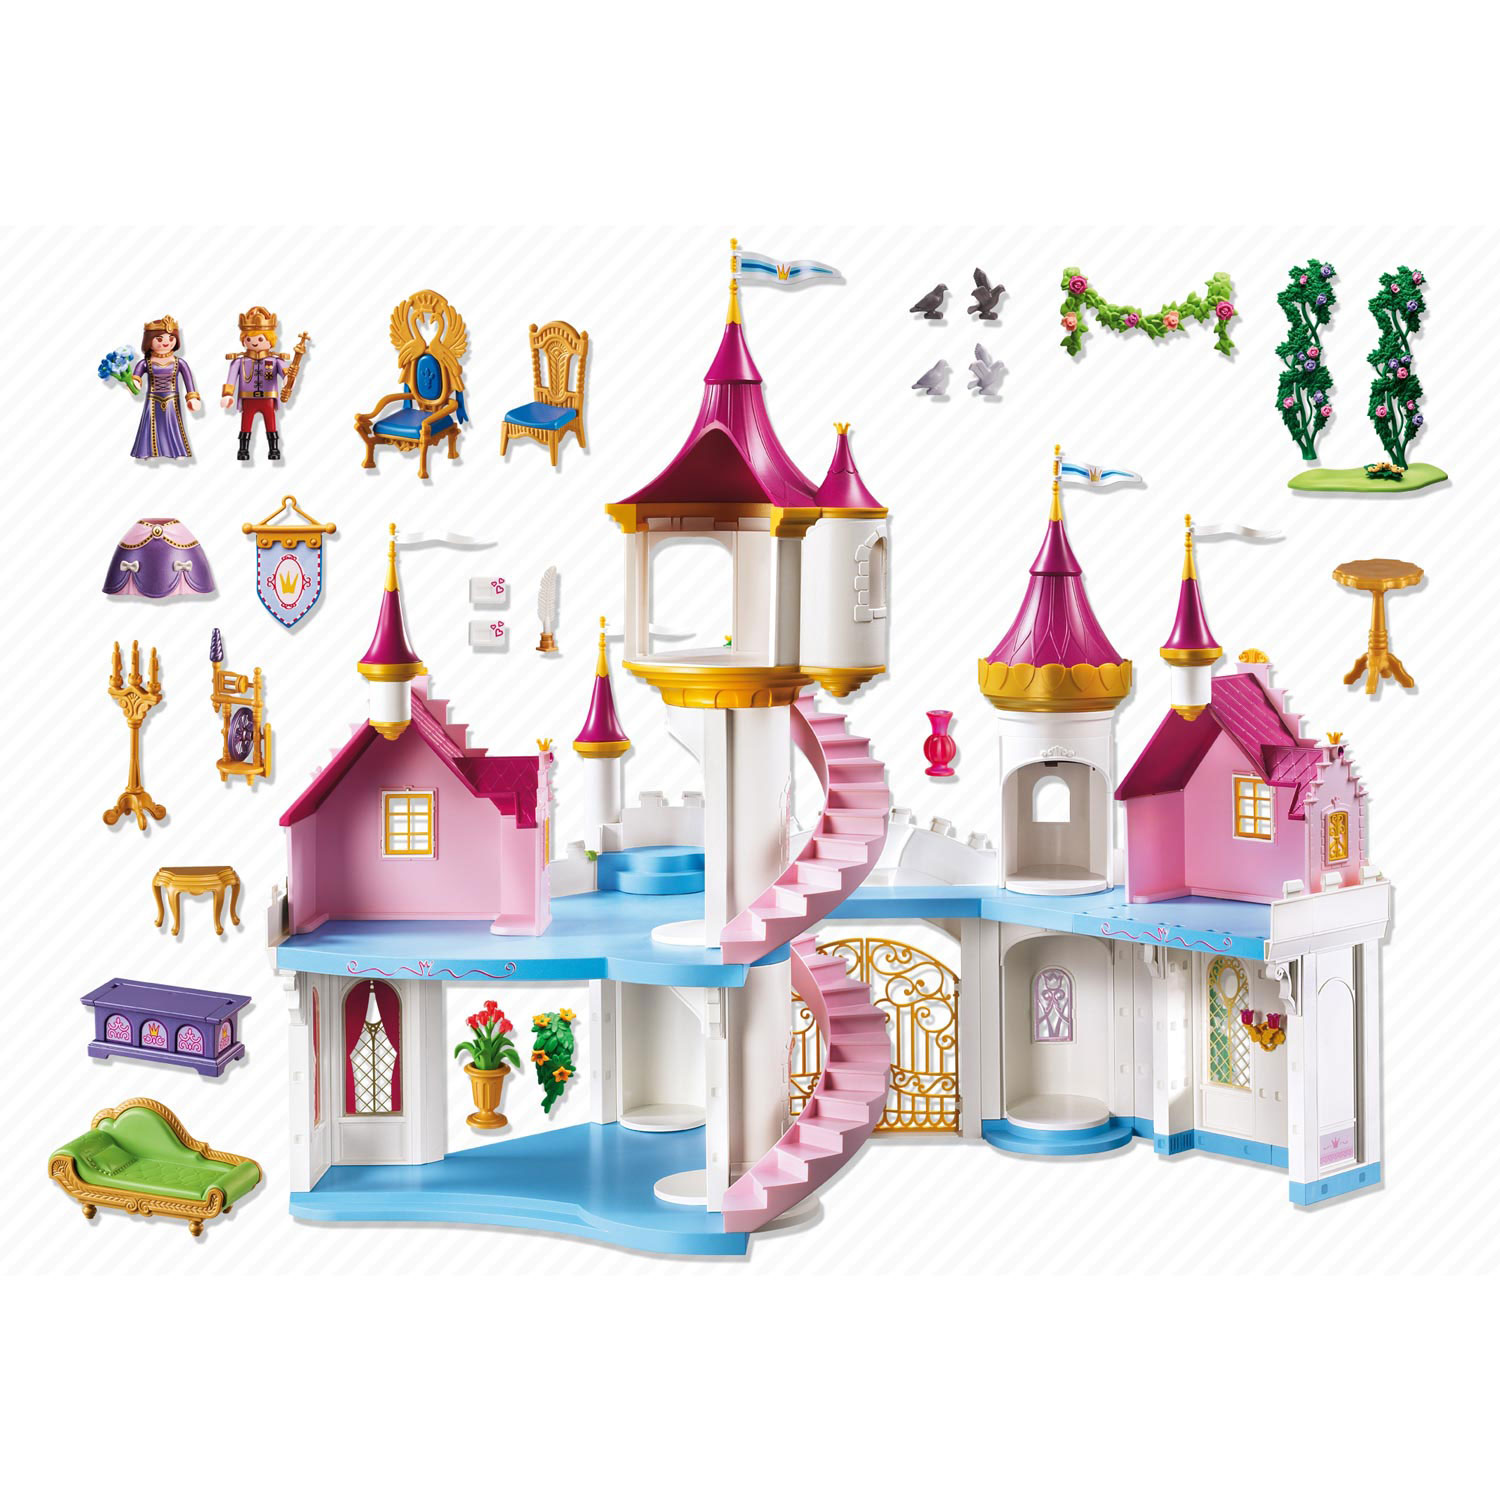 Playmobil 6848 Royal Palace | Thimble Toys